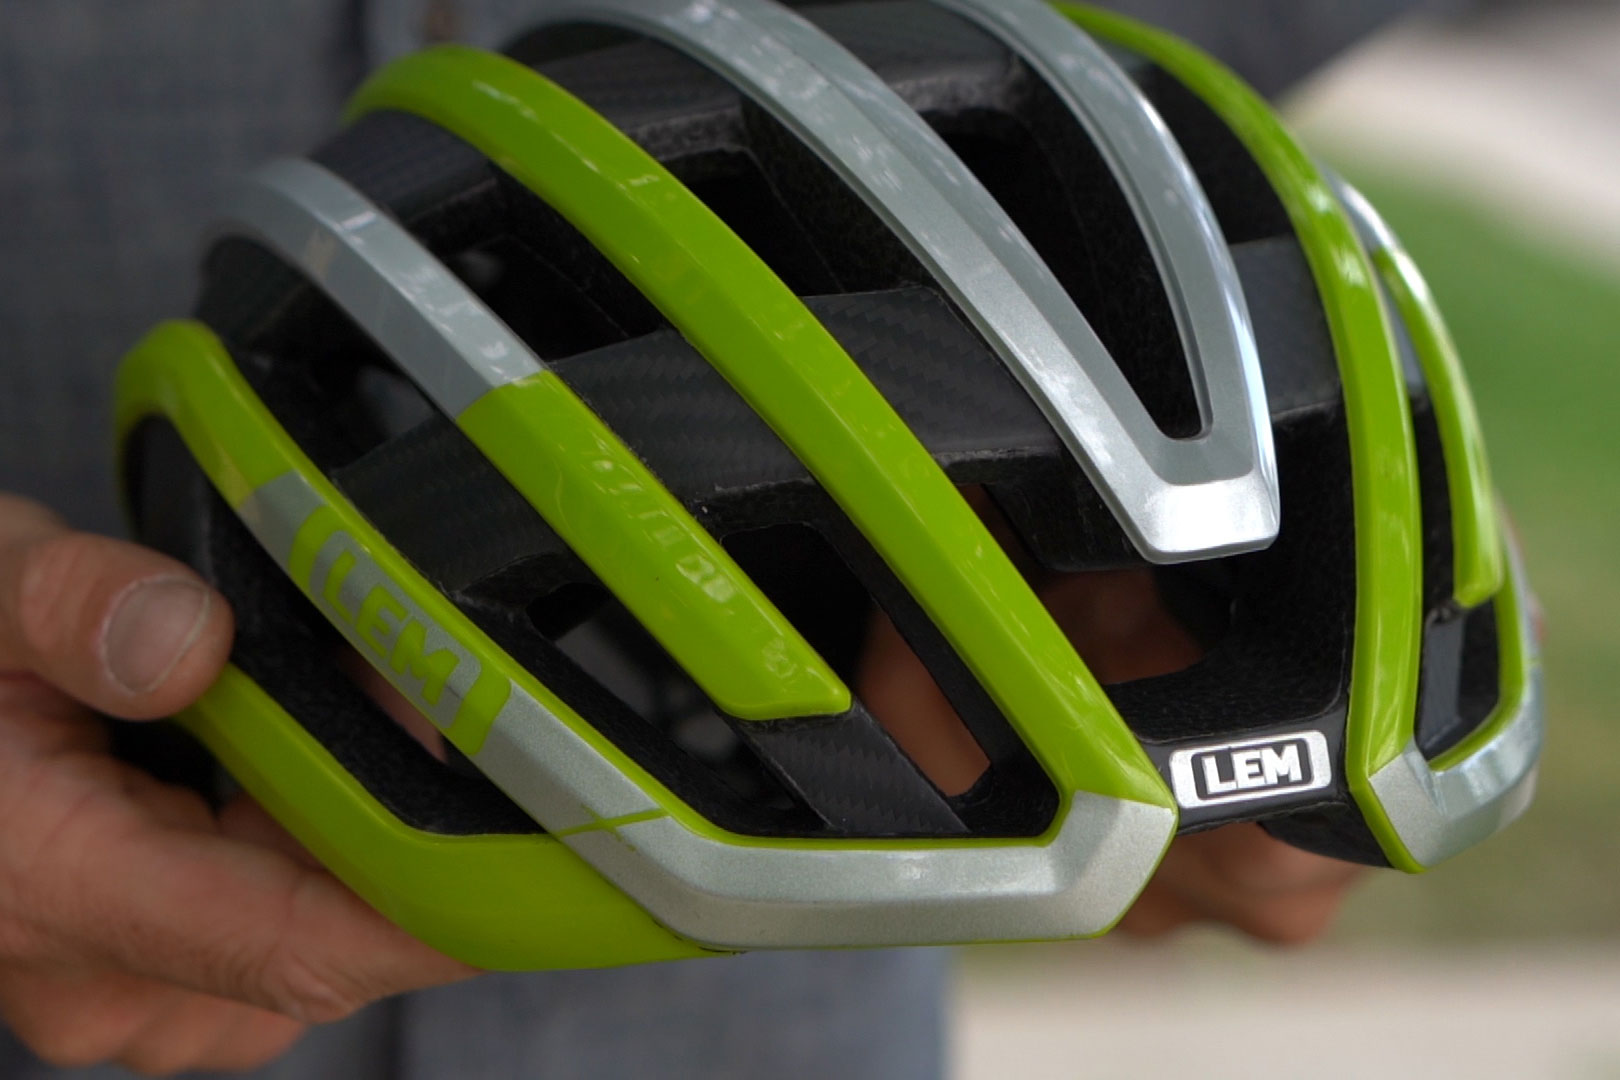 LEM MotivAir cycling helmet review